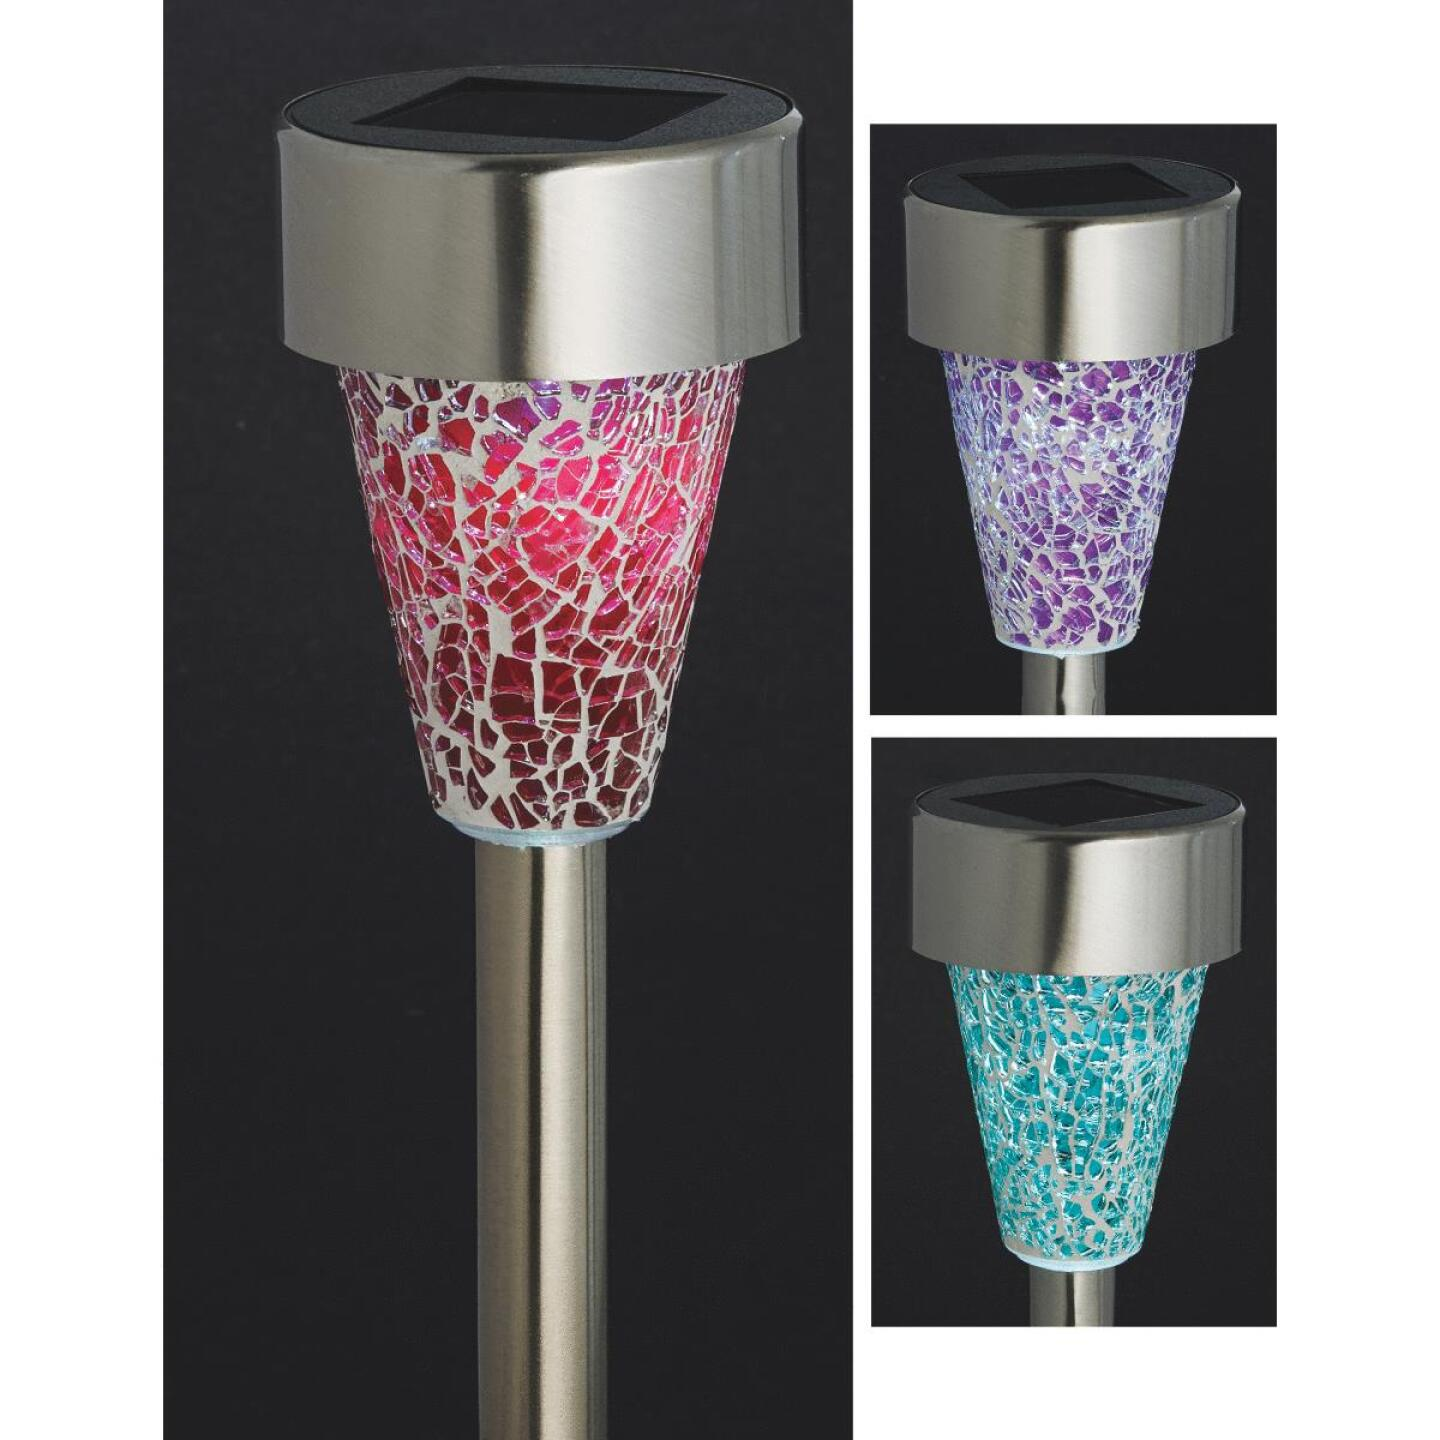 Outdoor Expressions Green, Red, or Purple 2.10 Lumens Stainless Steel Solar Path Light Image 1